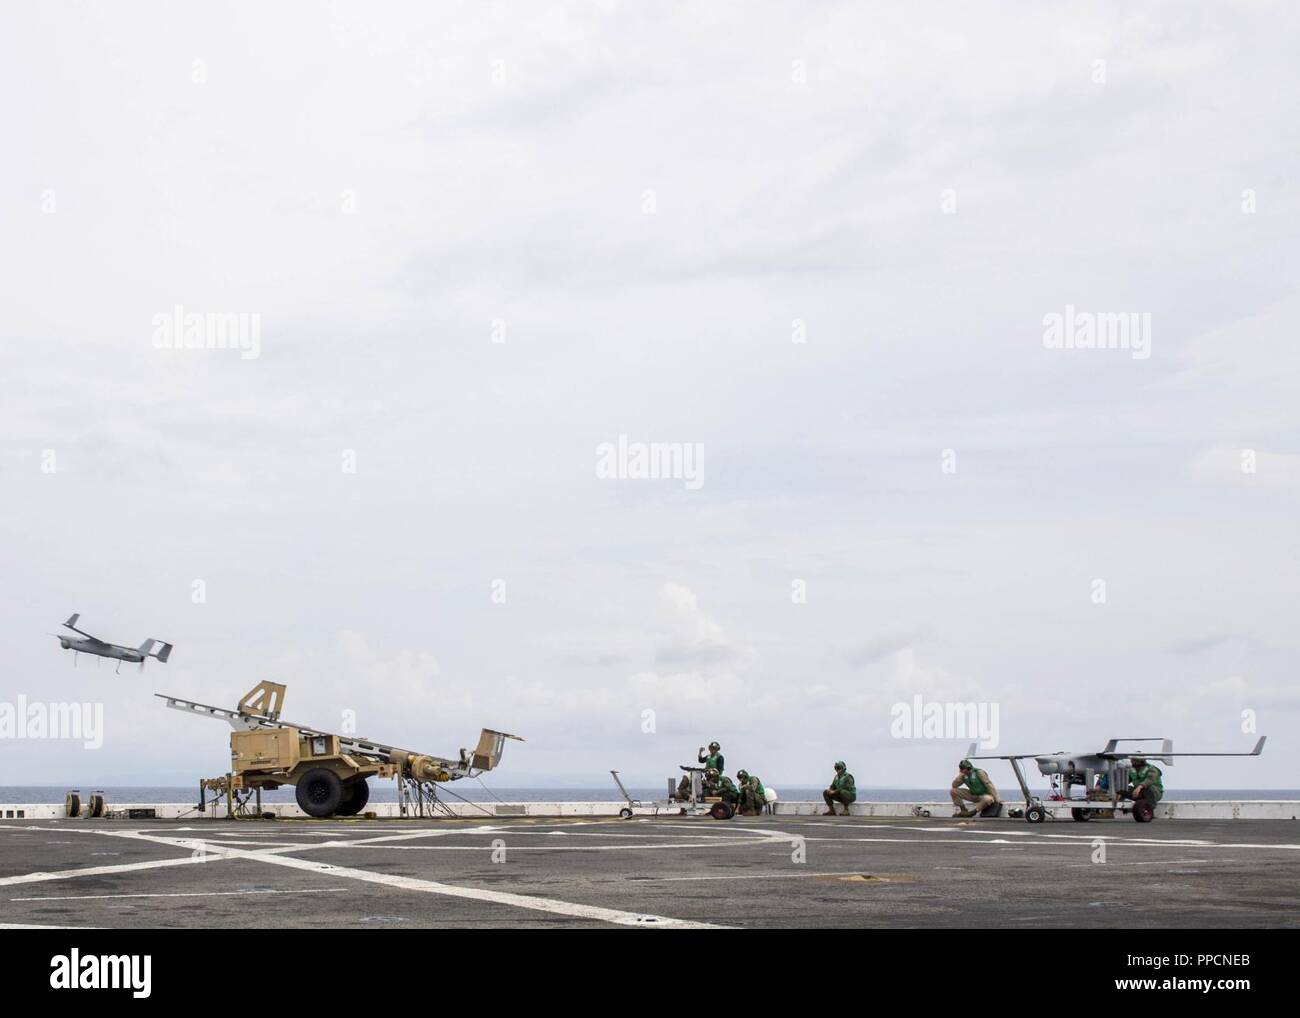 SURIGAO STRAIT (Aug. 16, 2018) Marines assigned to the Marine Light Attack Helicopter detachment of Marine Medium Tiltrotor Squadron VMM (166), launch an RQ-21A Blackjack drone, from the flight deck of San Antonio-class amphibious transport dock USS Anchorage (LPD 23) during a regularly scheduled deployment of the Essex Amphibious Ready Group (ARG) and 13th Marine Expeditionary Unit (MEU). The Essex ARG/13th MEU is a capable and lethal Navy-Marine Corps team deployed to the 7th fleet area of operations to support regional stability, reassure partners and allies and maintain a presence postured - Stock Image